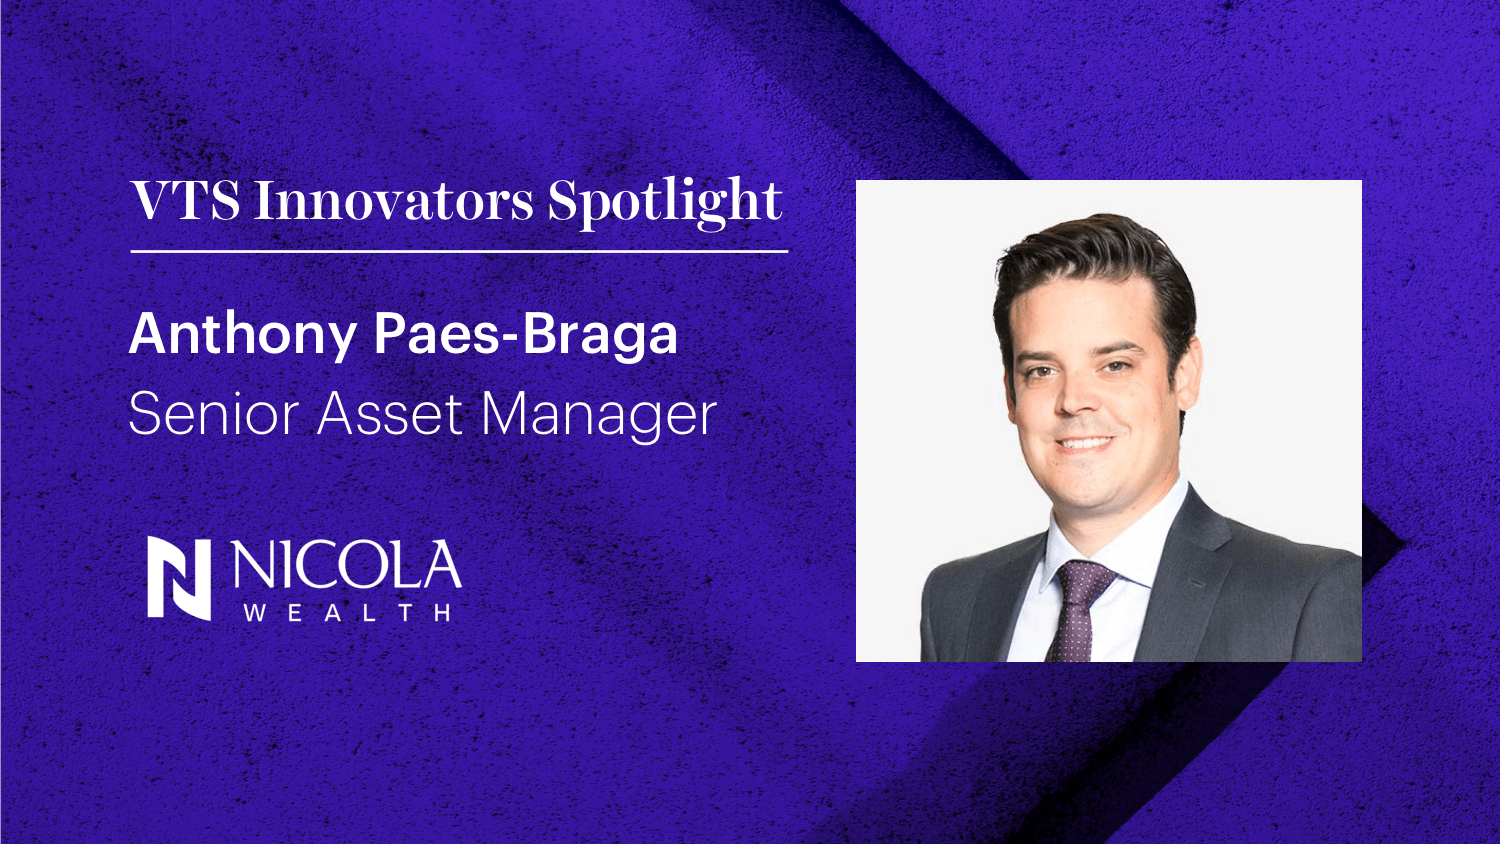 Nicola Wealth's Anthony Paes Braga on Using Technology to Support Rapid Growth